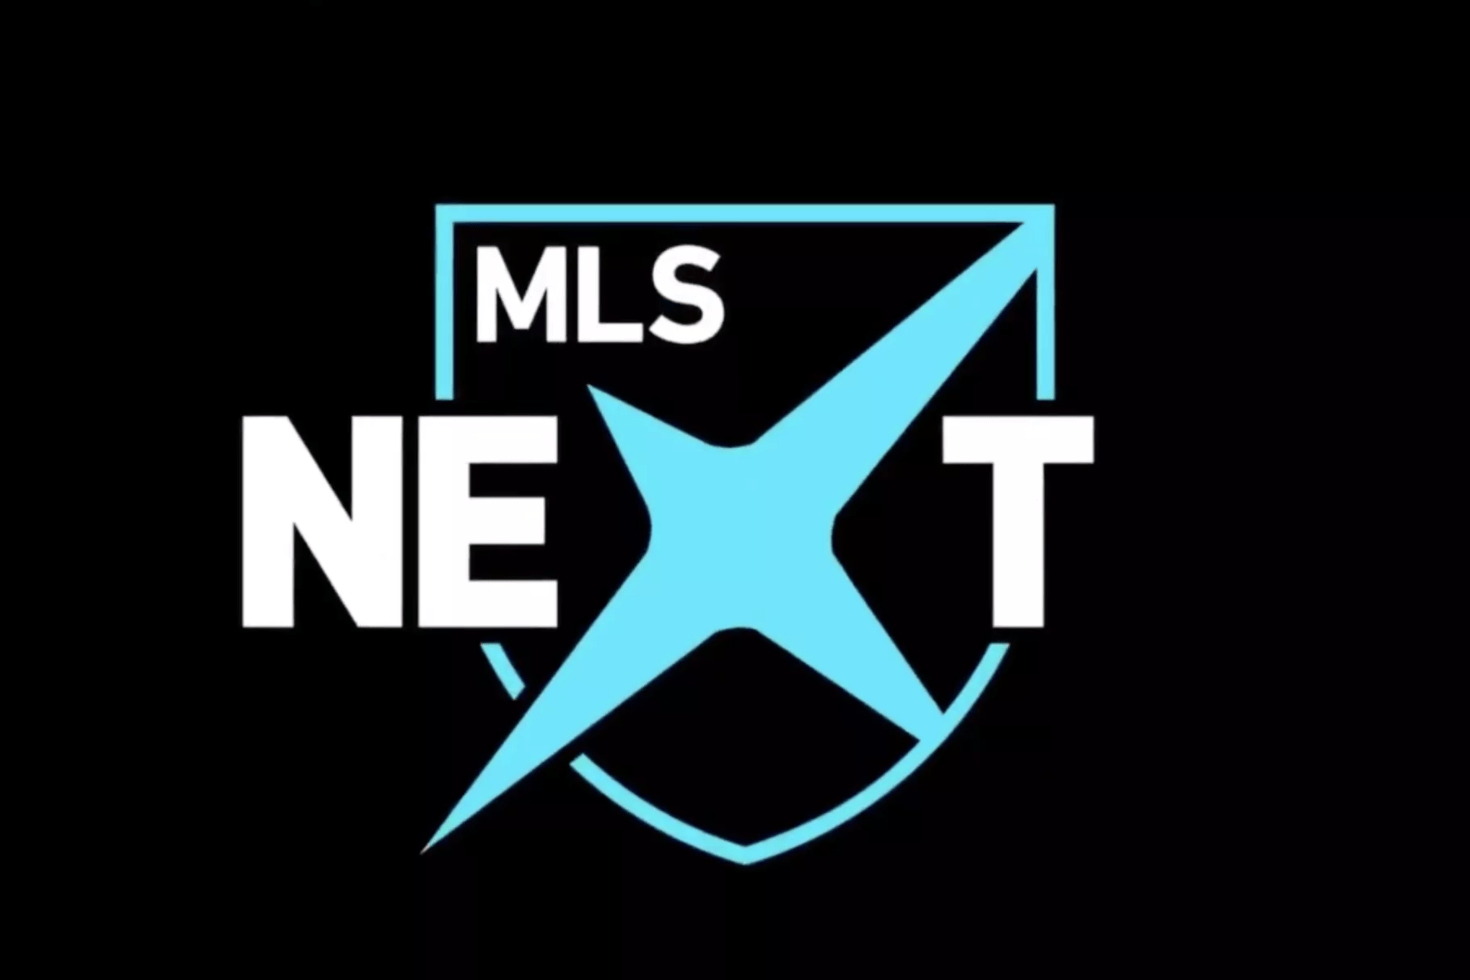 MLS NEXT: Major League Soccer picks up the reins at the top of boys' youth soccer in America